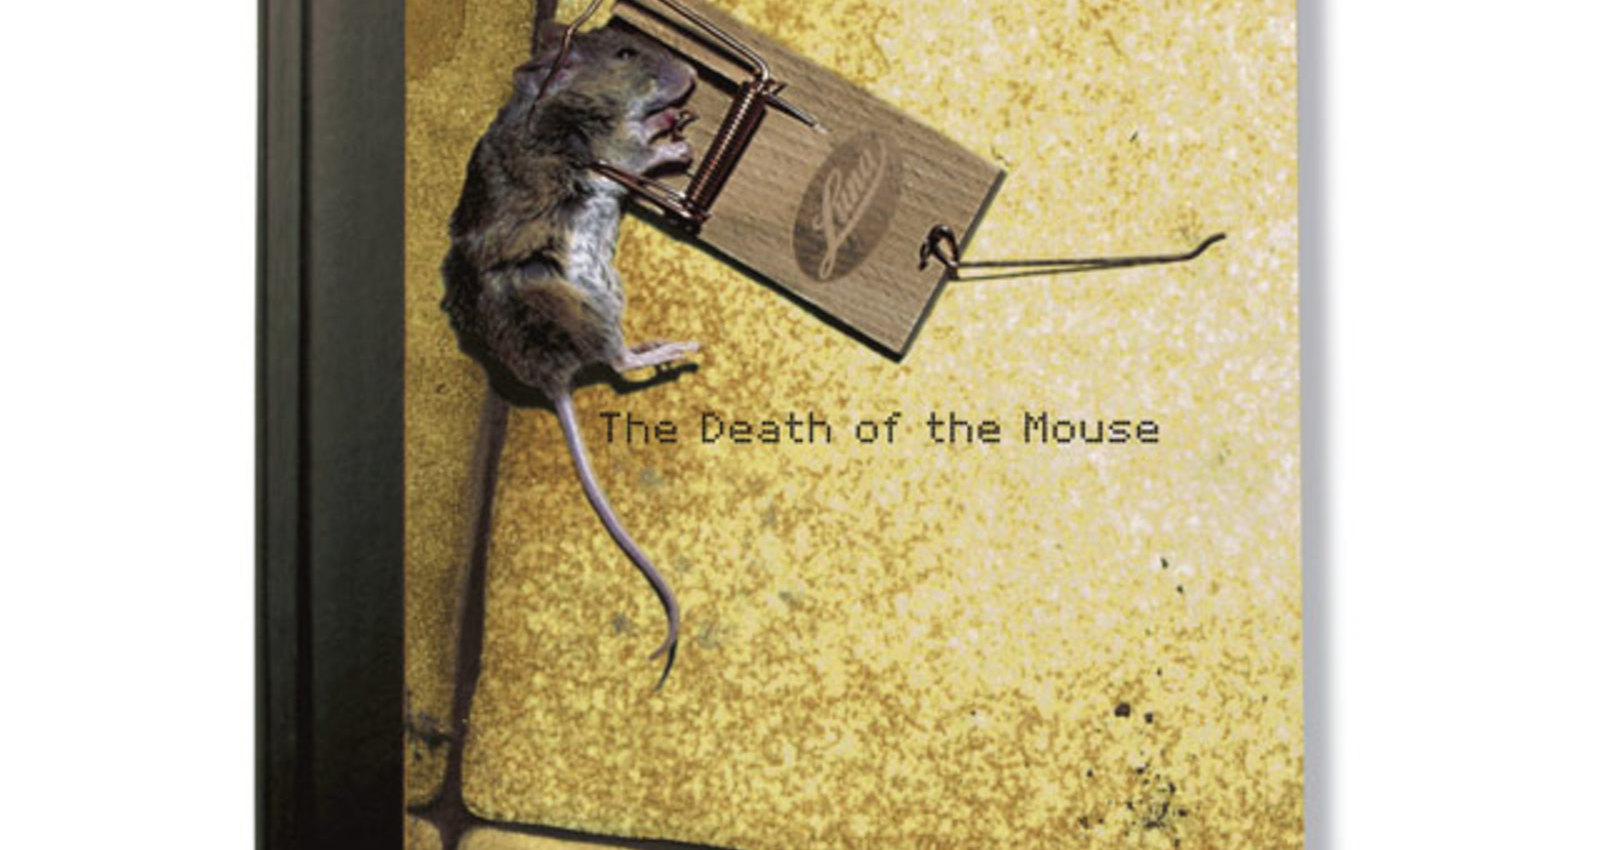 Der Mausetod  (The Death of the Mouse)